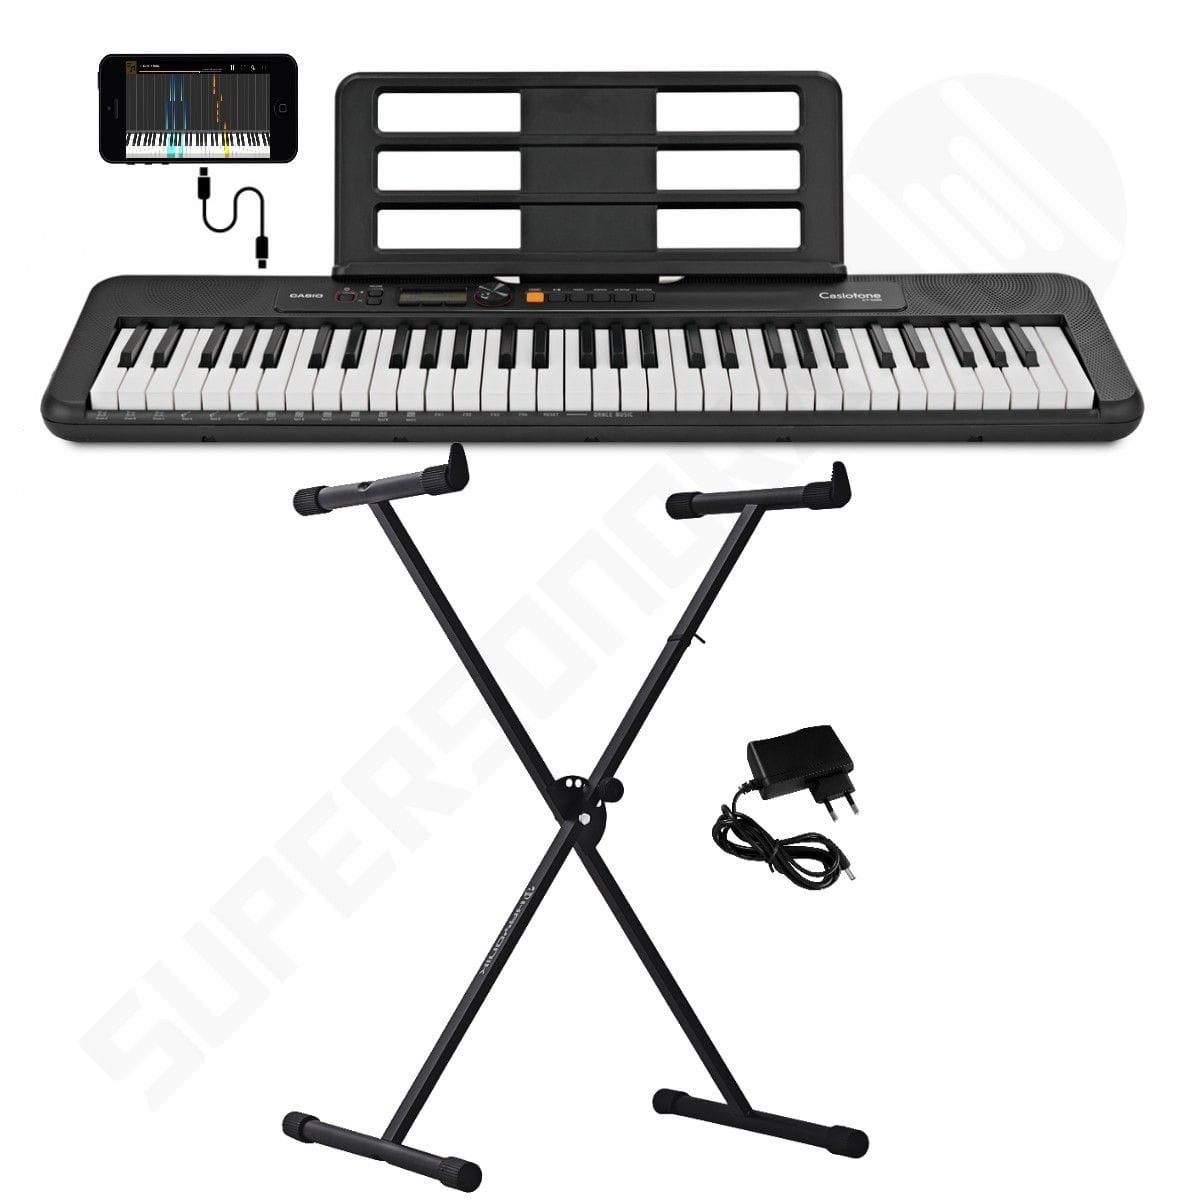 Kit Teclado Musical CASIOTONE CT S200 CASIO Preto Aplicativo Chordana Play + Suporte X